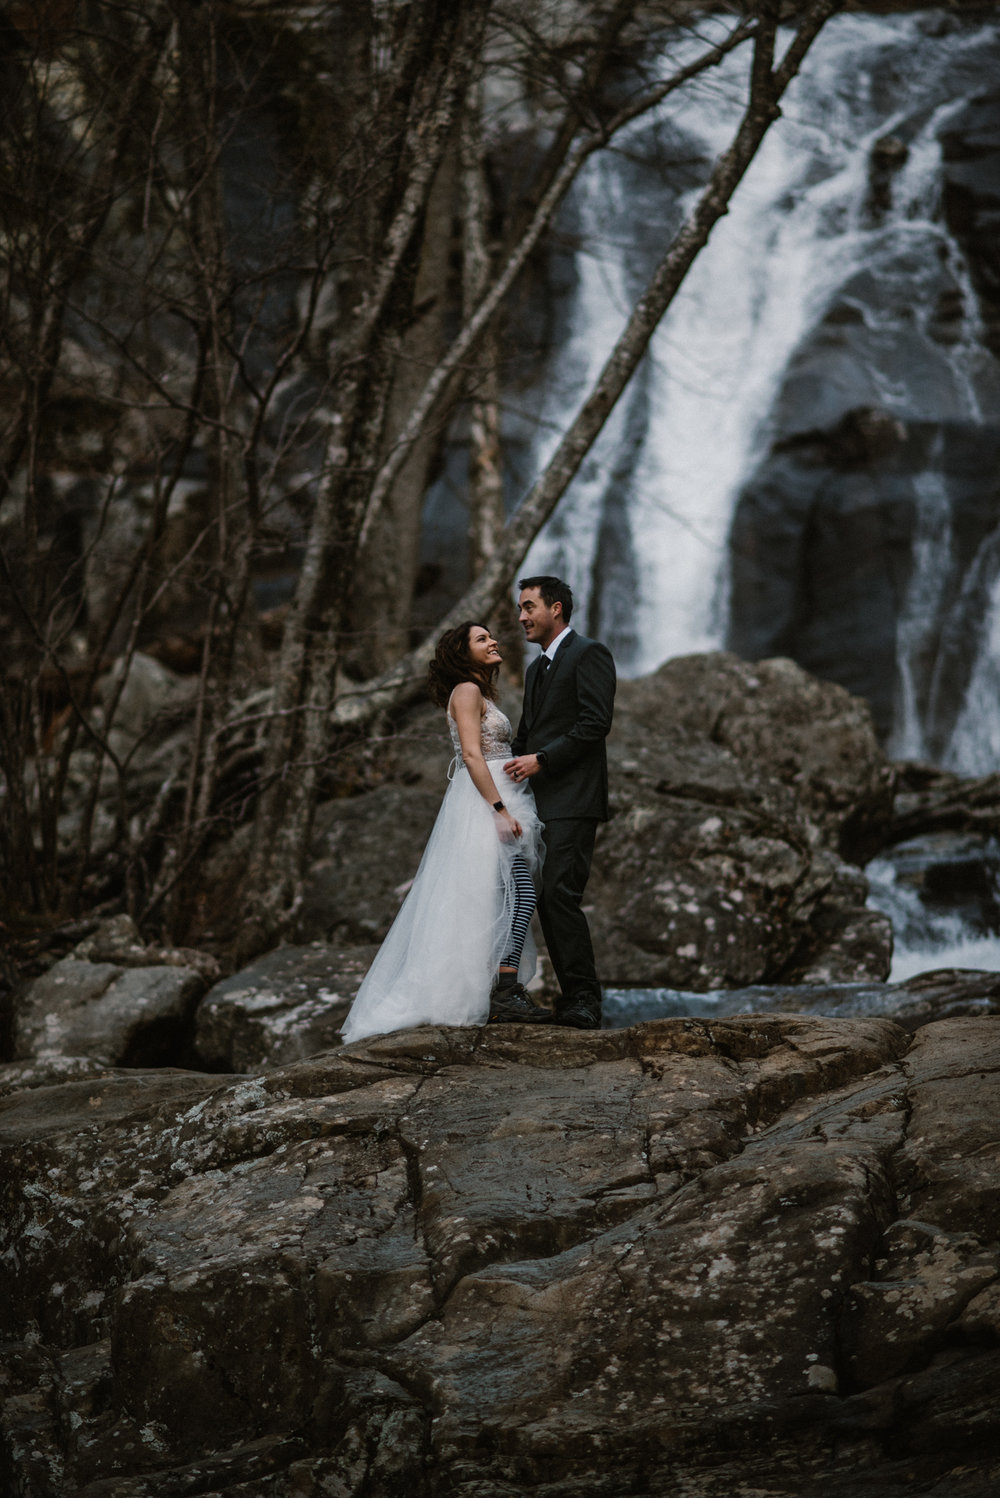 Stephanie and Steve - Shenandoah National Park Elopement - Sunrise Hiking Elopement - Adventurous Elopement - Virginia Elopement Photographer - Shenandoah national Park Wedding Photographer - White Sails Creative_11.jpg